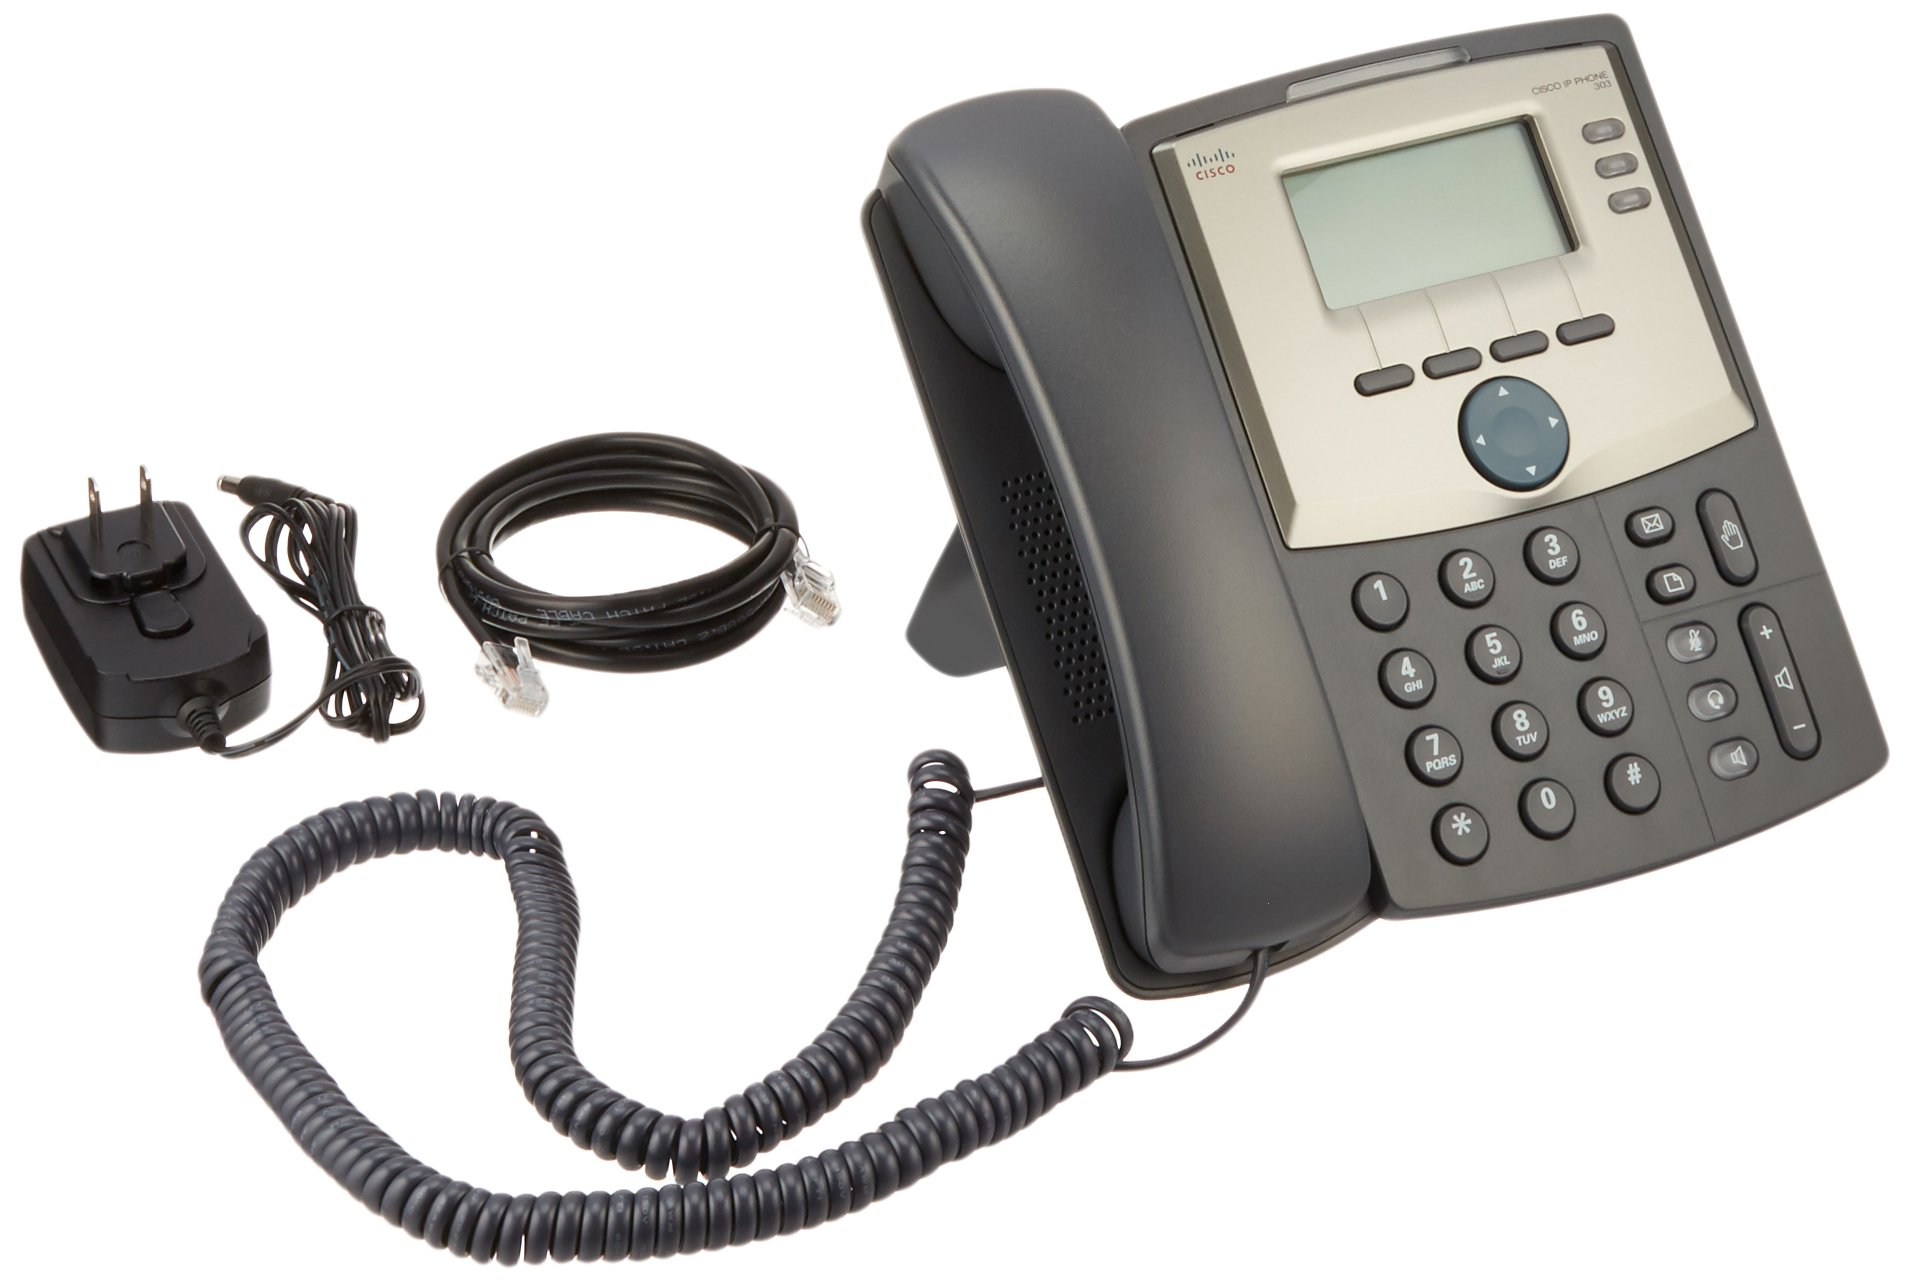 Cisco Small Business Pro SPA 303 IP Phone N AMERICAN POWER